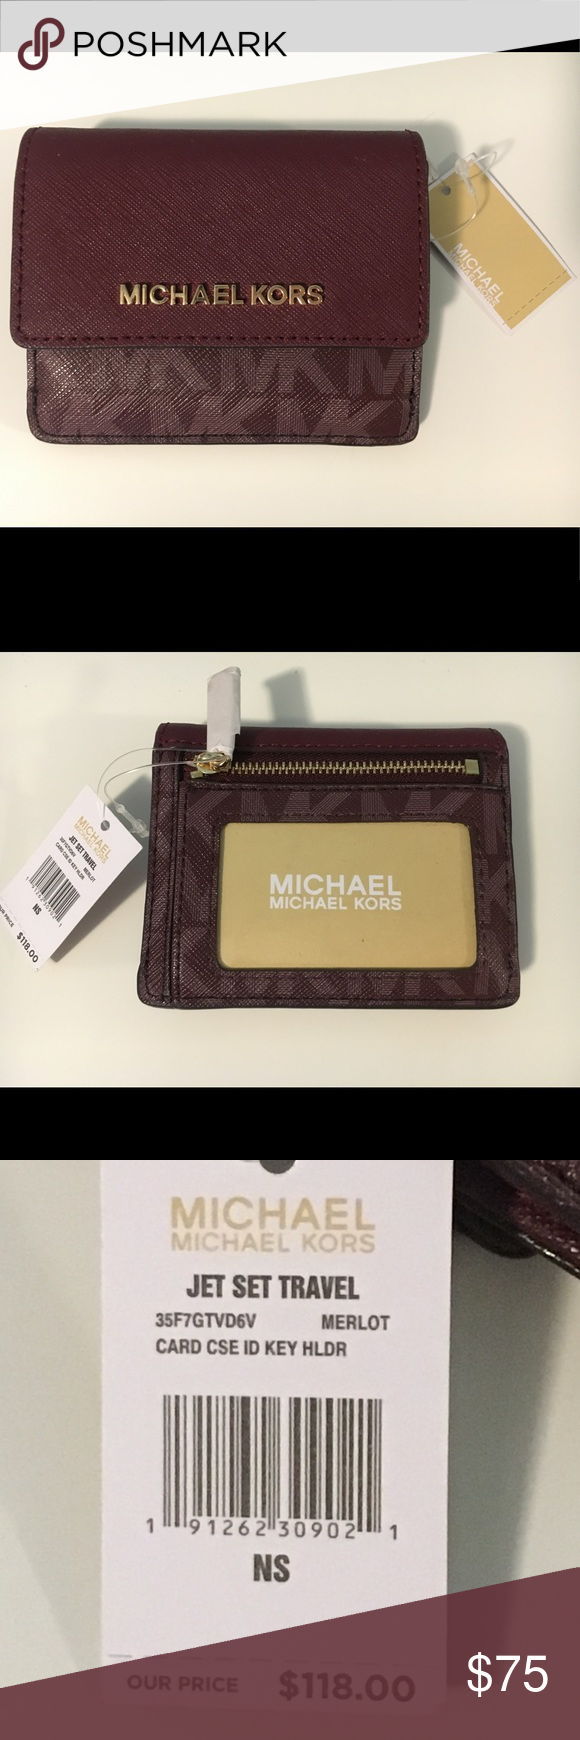 f71b02822 Michael Kors Wallet Michael Kors MK Merlot Red Card Case/ID Key Holder  MICHAEL Michael Kors Accessories Key & Card Holders